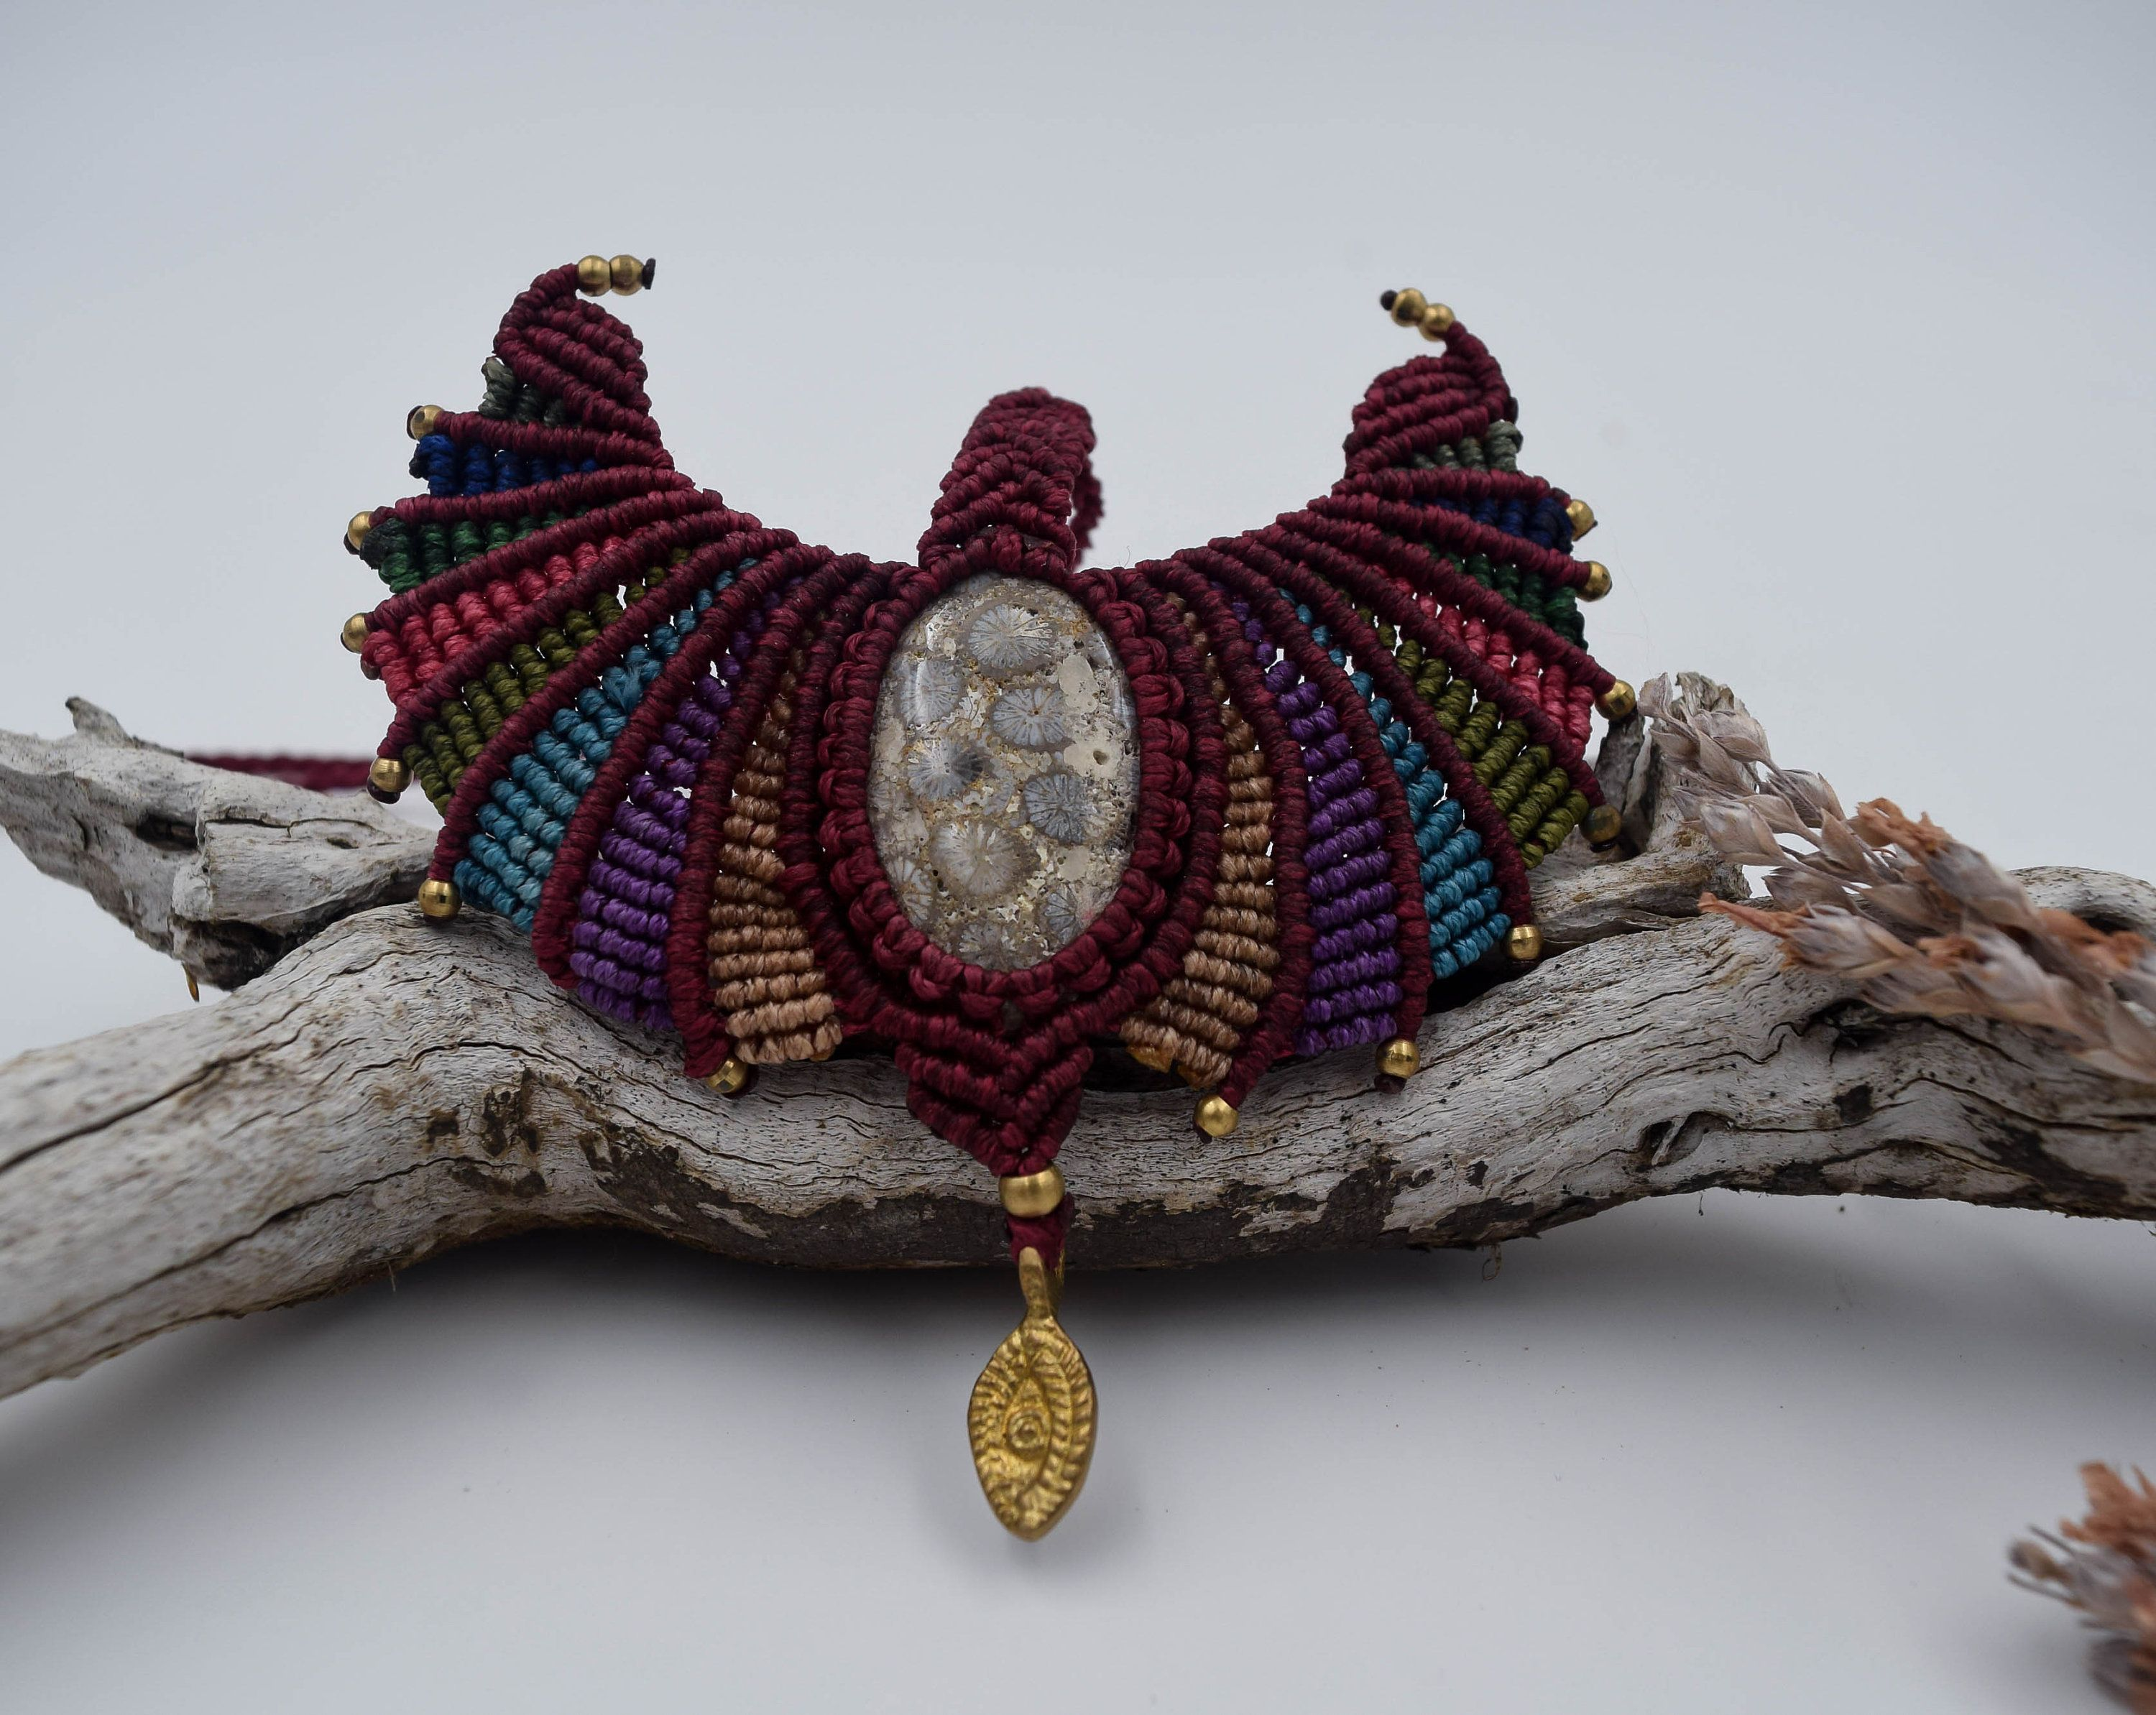 MACRAME NECKLACE WITH FOSSILS STONE This beautiful piece is made with macrame art jasper fossils, a protection stone. Its shape reminds open wings and the length is adjustable.  #BohoJewelry #ProtectionNecklace #BohemianNecklace #macrame #TigerEyeJewelry #wikandah #MacrameJewelry #HippieChic #MacrameNecklace #BohoNecklace